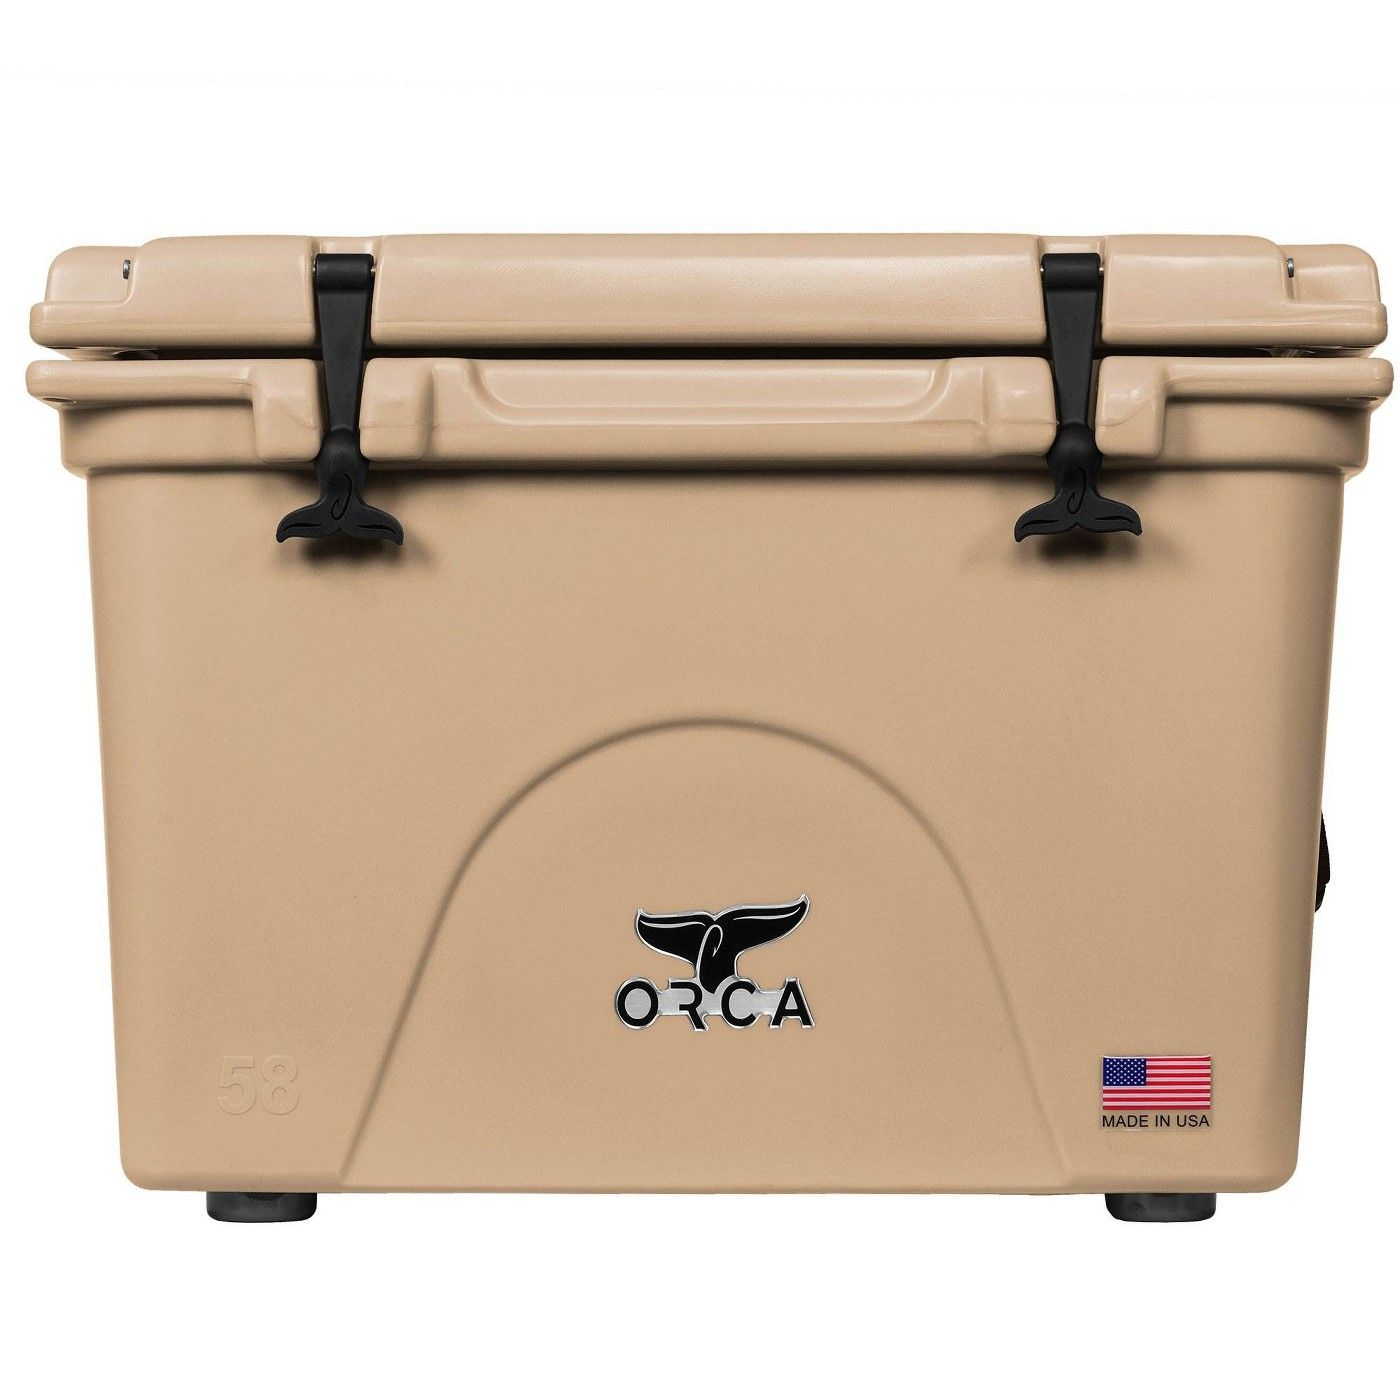 Orca 58 Quart 72 Can High Performance Roto Molded Insulated Ice Cooler Tan Orca Cooler Orca Cooler